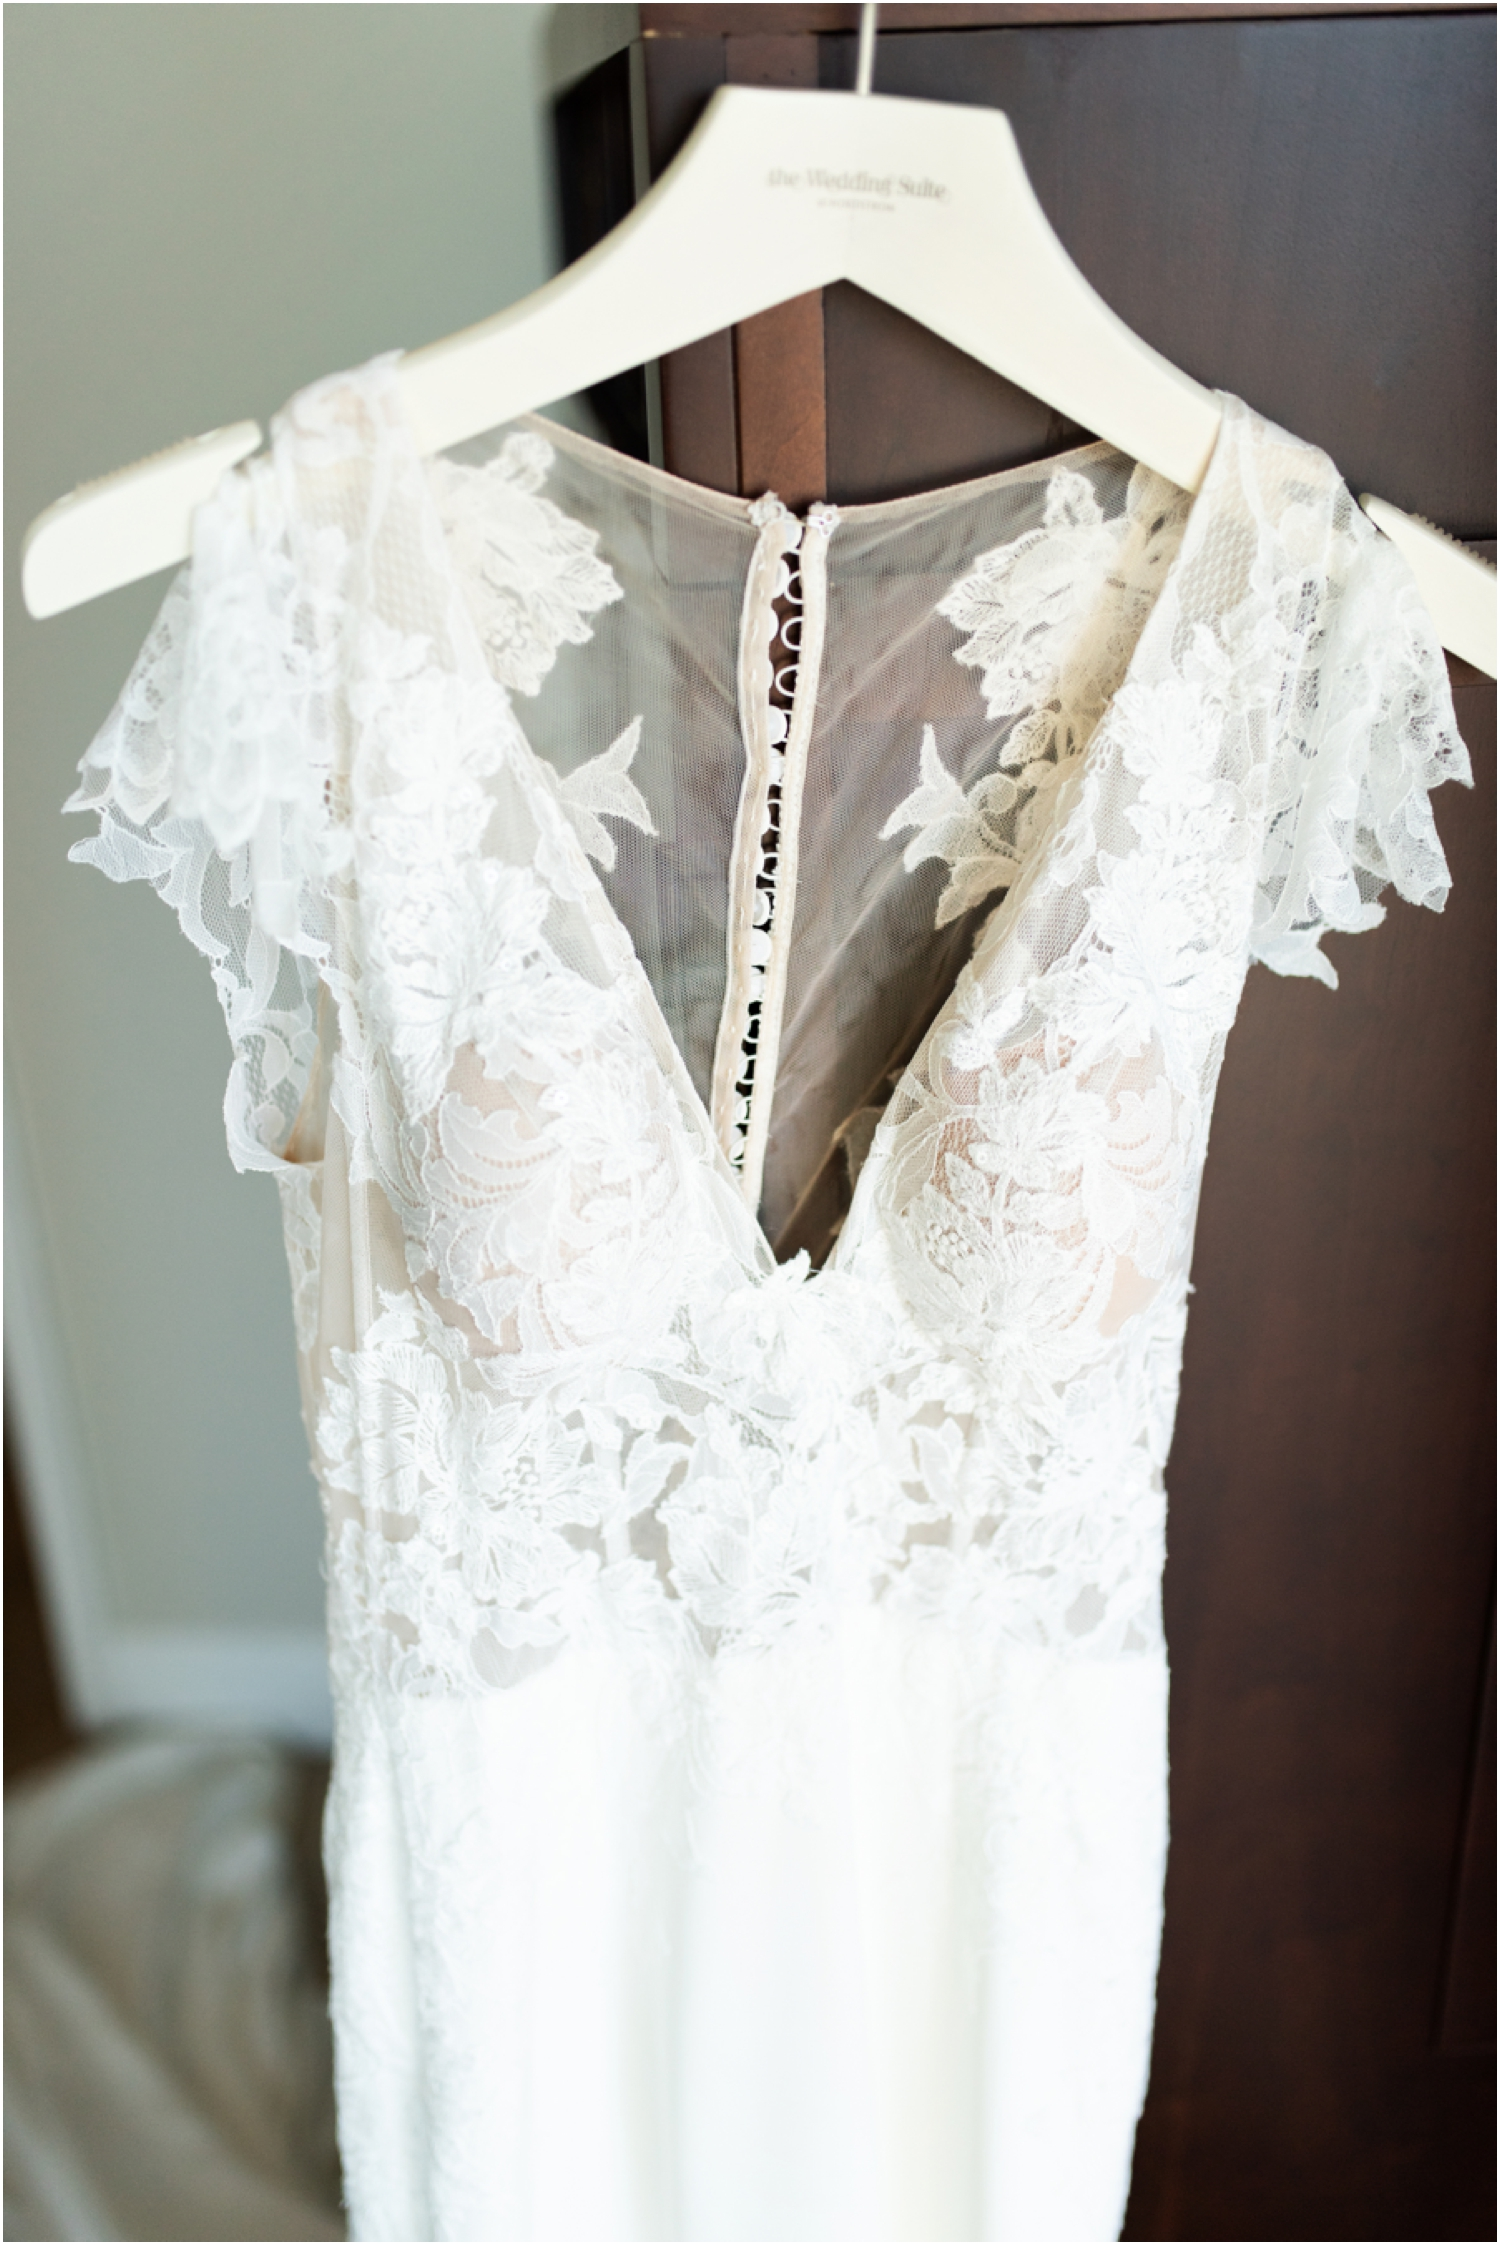 Portofino Island Resort Pensacola Beach Wedding Photographer dresses wedding gown details